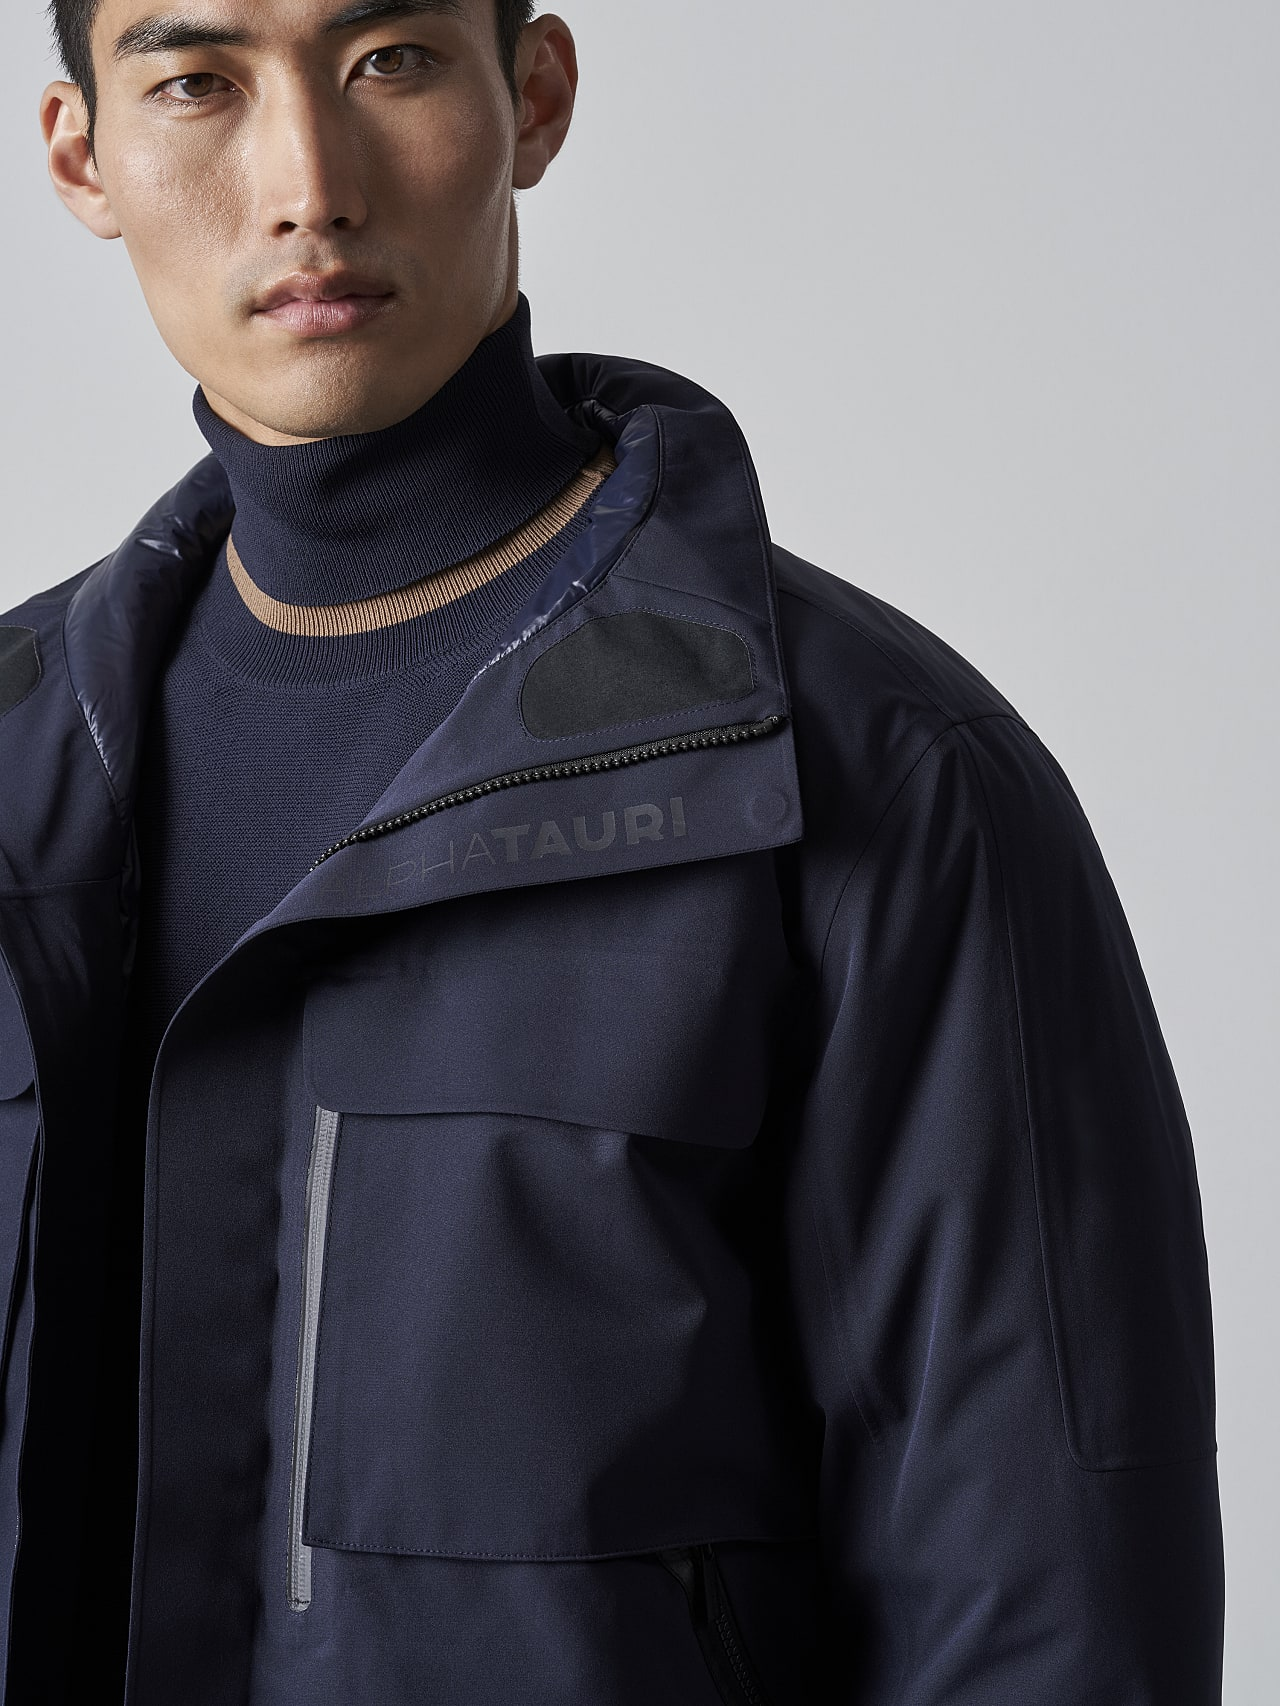 OKOVO V4.Y5.02 Packable and Waterproof Winter Jacket navy Right Alpha Tauri